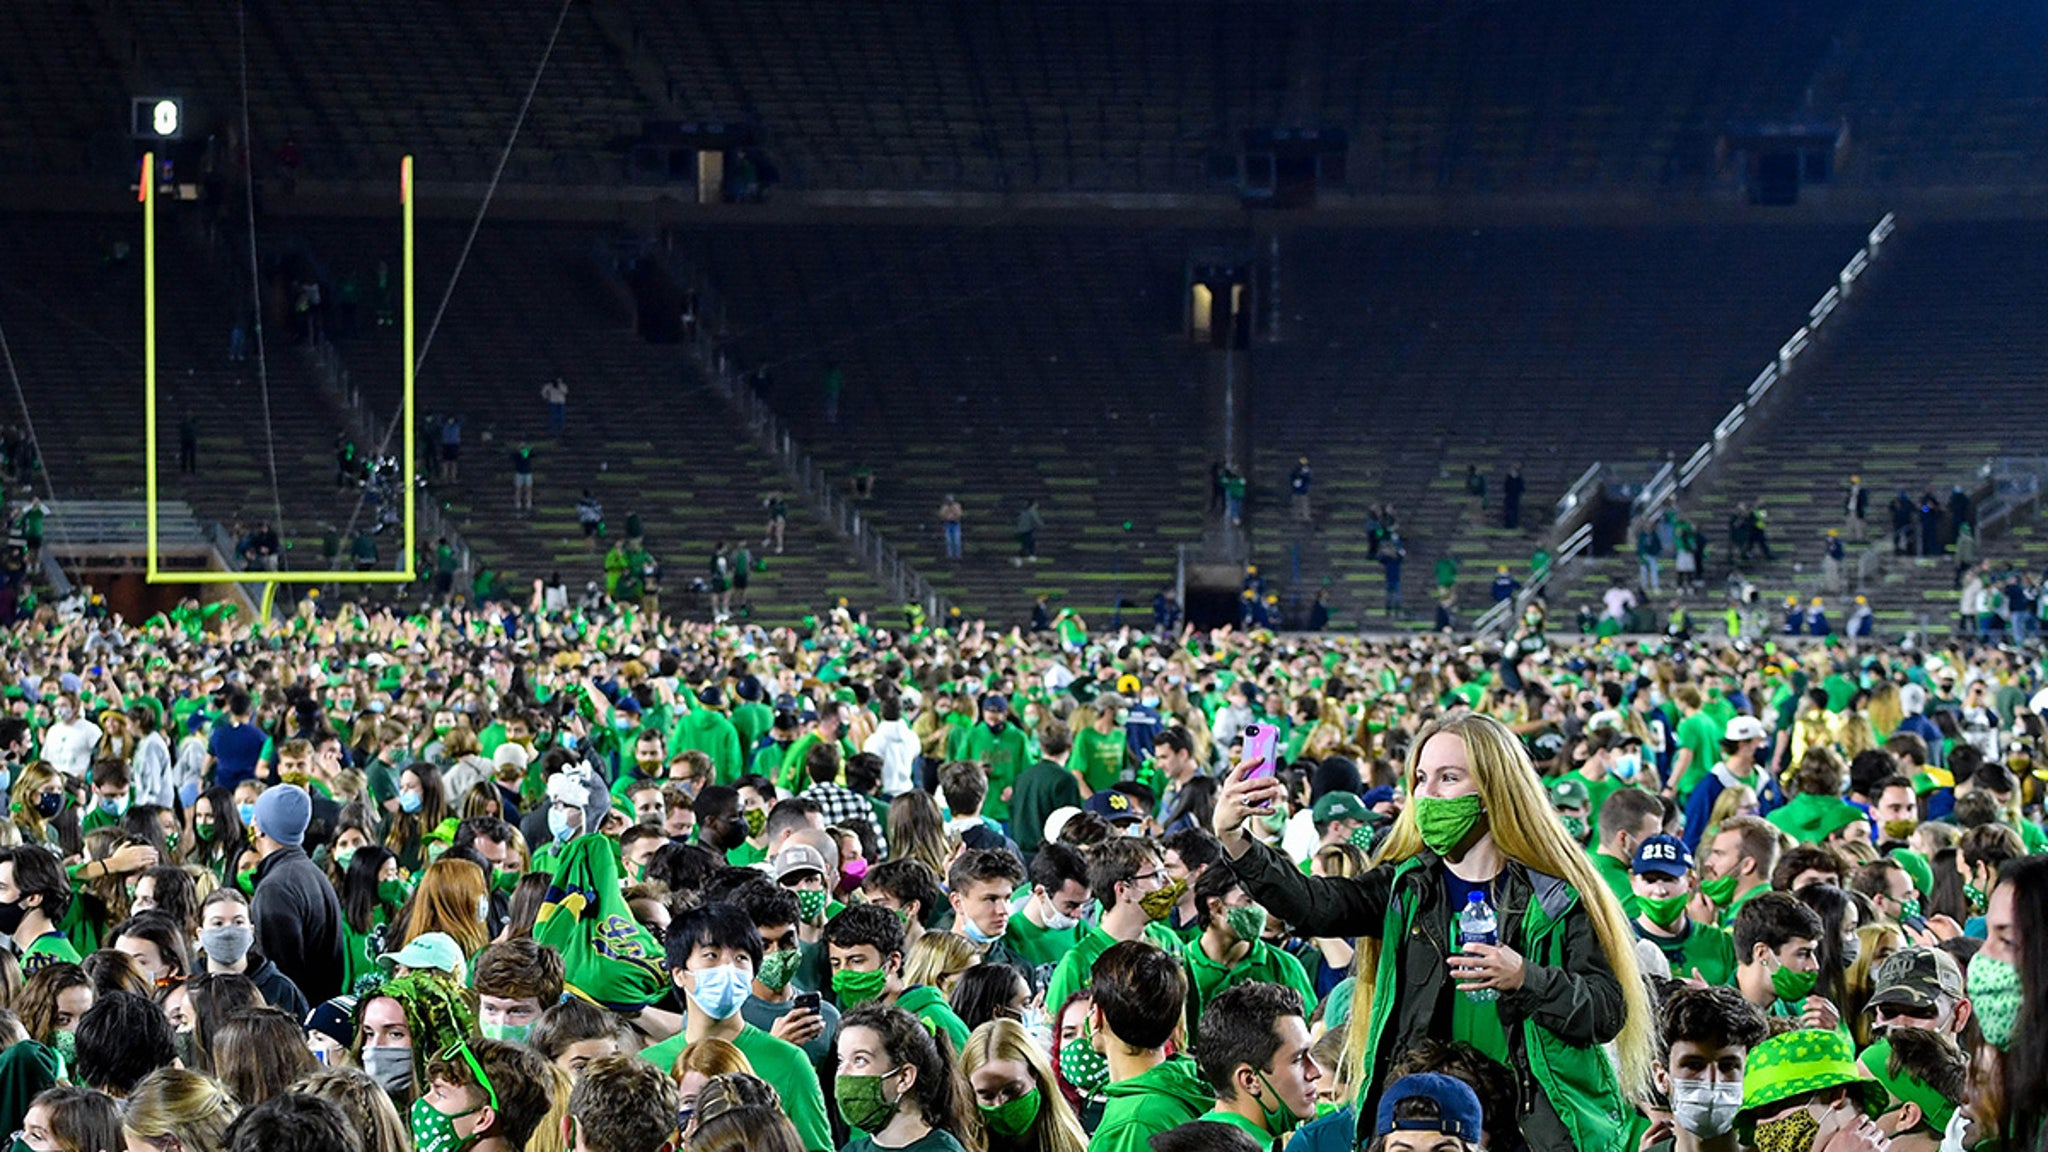 Notre Dame Livid At Students for Storming Field ... Threatens Punishment